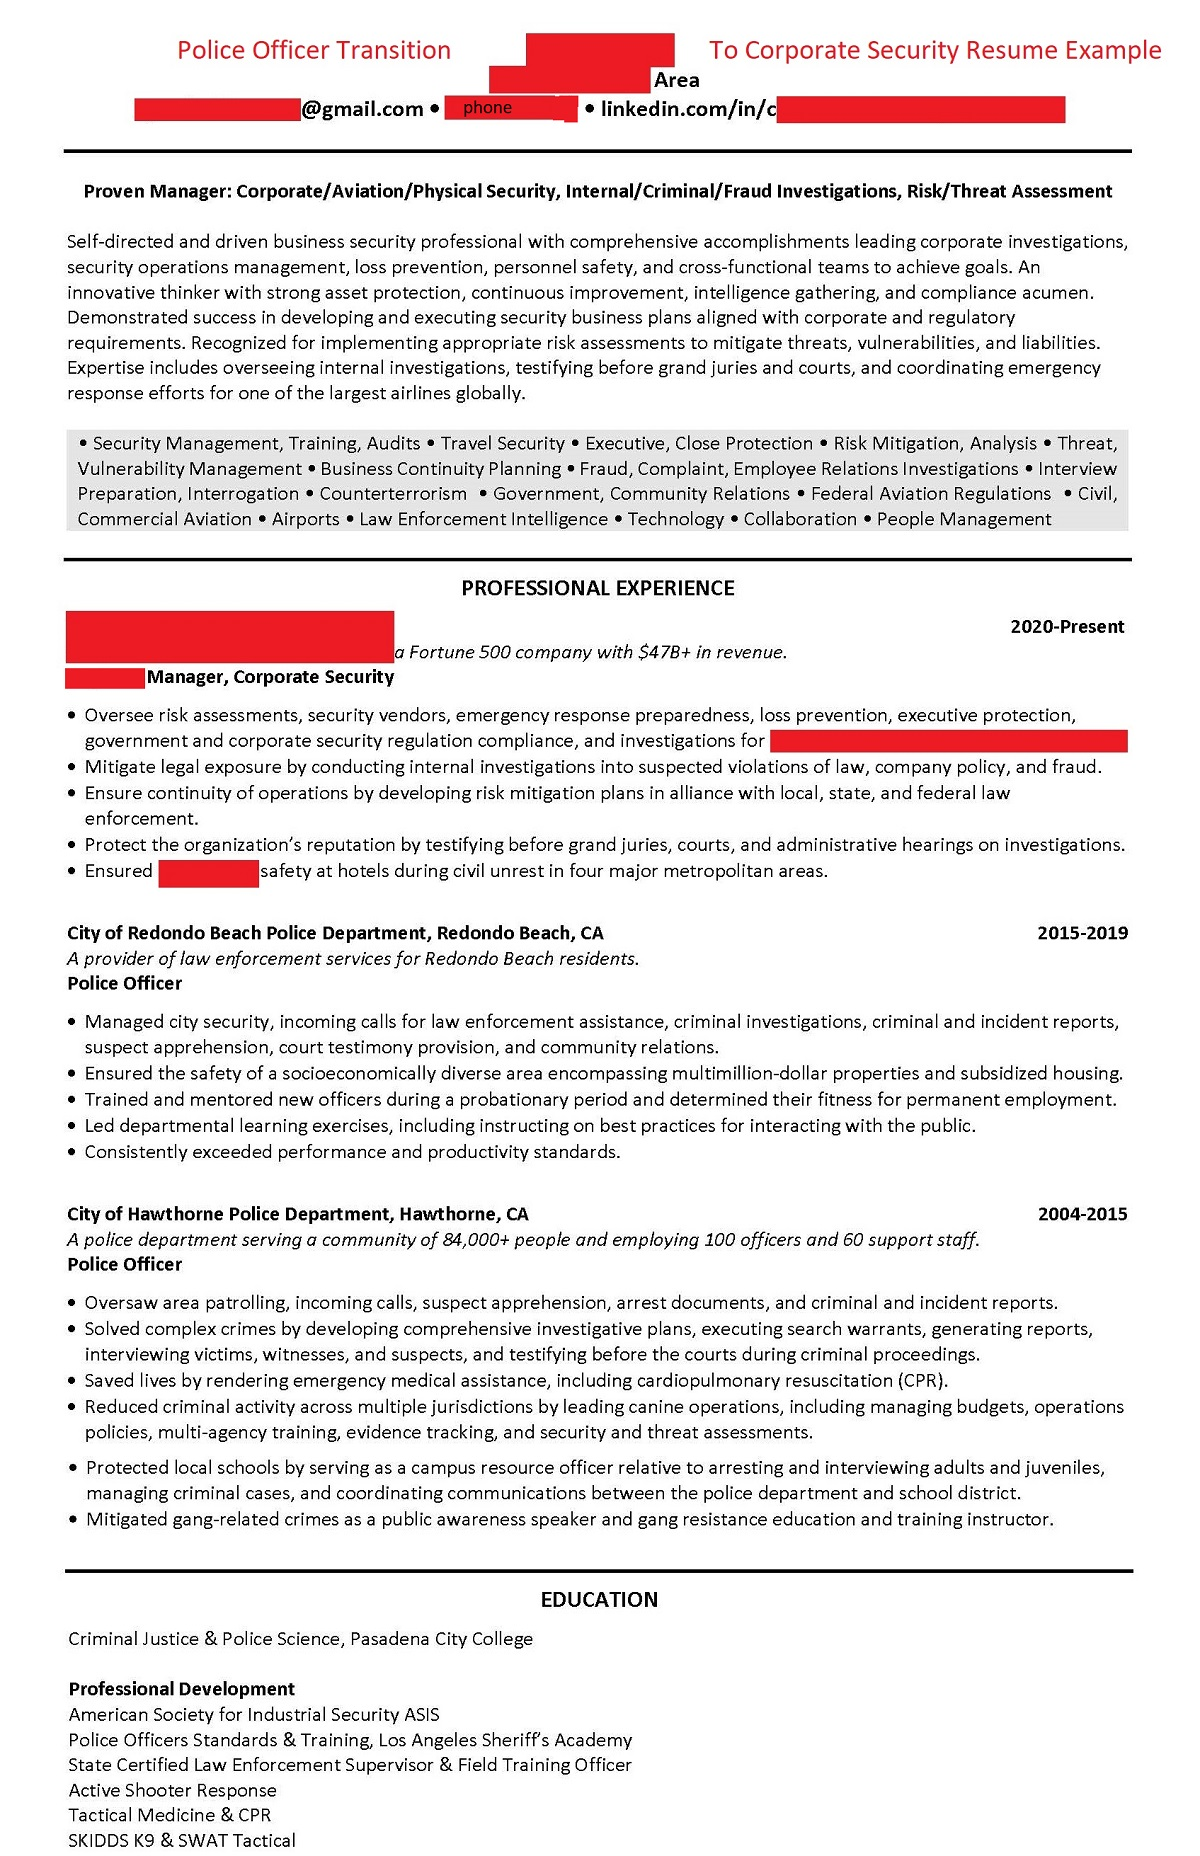 Resume Example Police Officer Transition